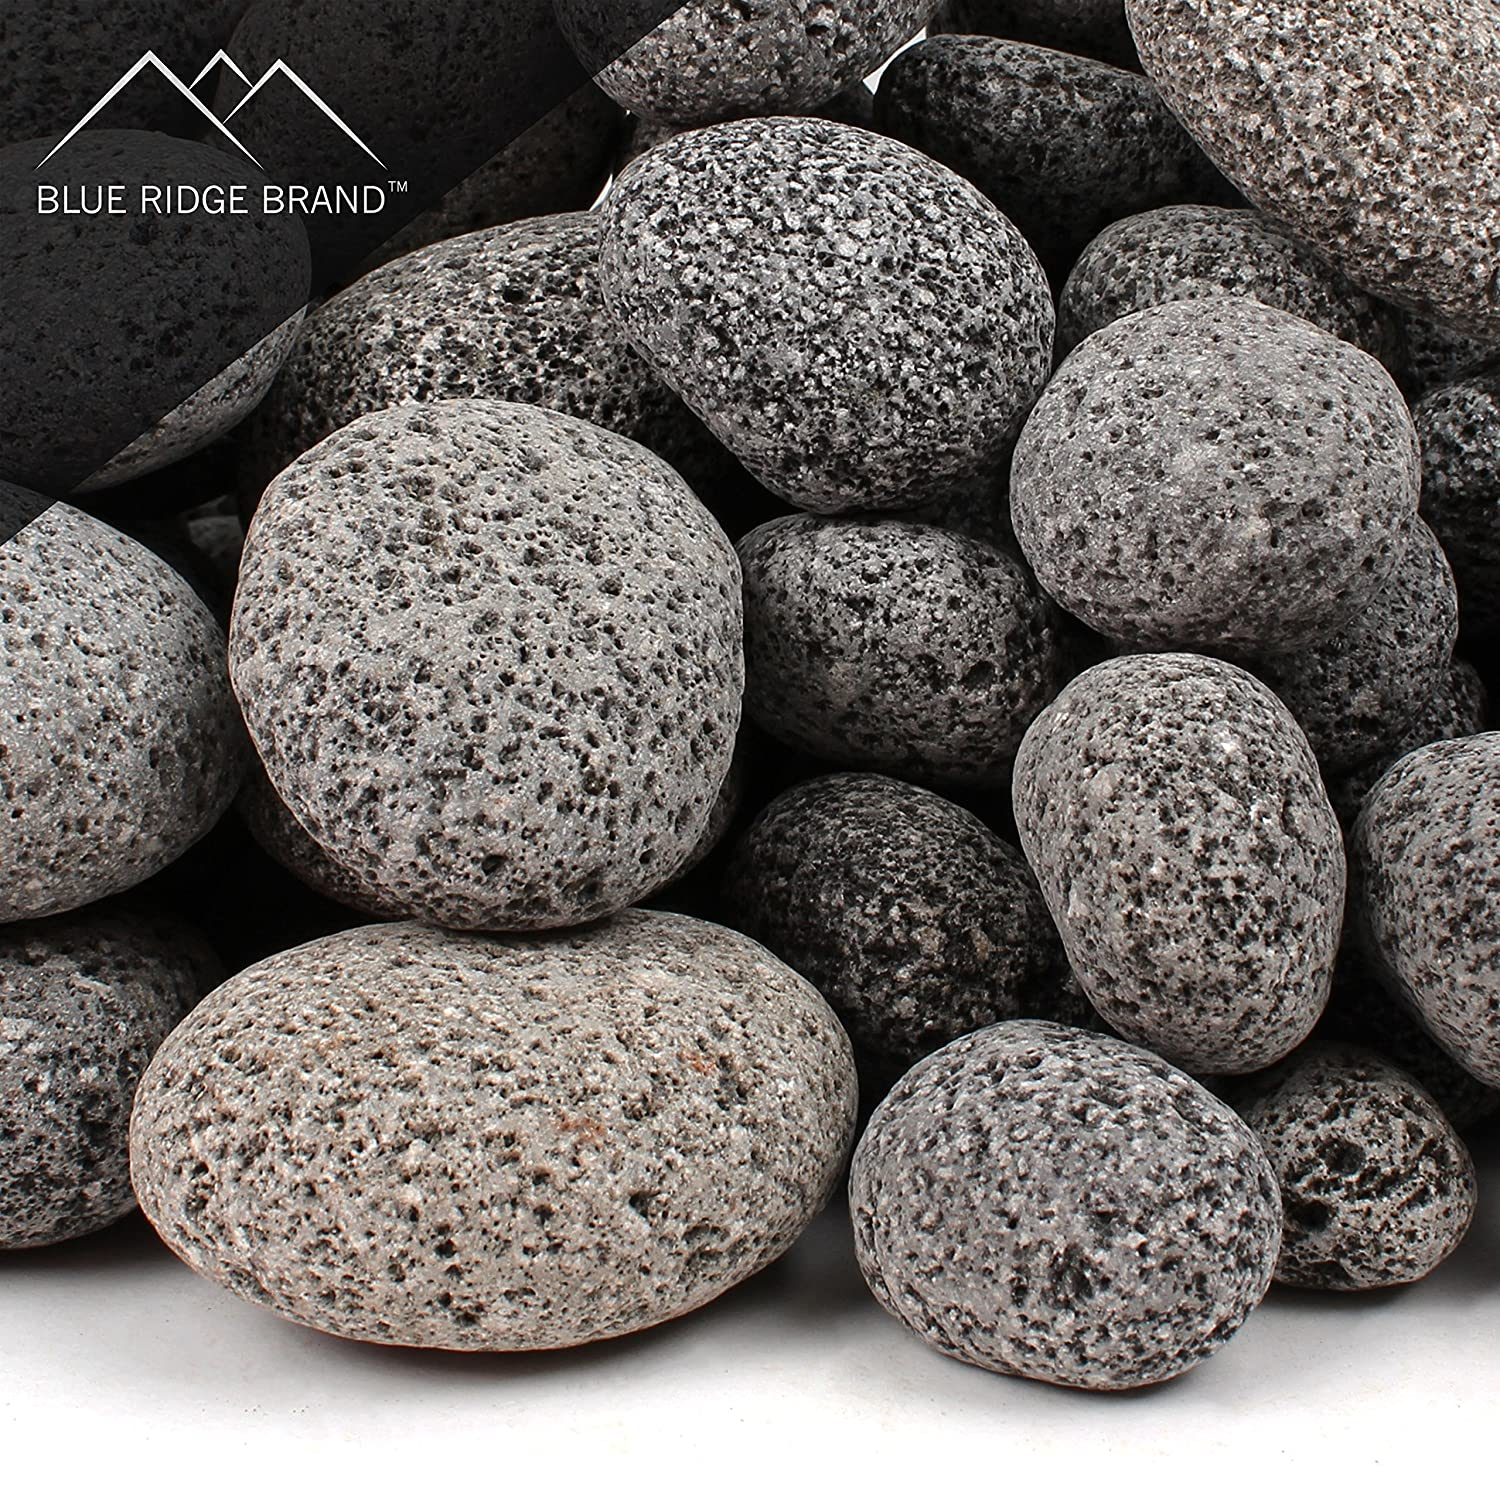 Blue Ridge Brand trade; Lava Rock - 10-Pound Tumbled Lava Stones for Fire Pit - 2 Black/Gray Lava Pebbles - Fire Glass Substitute - Landscaping Rocks